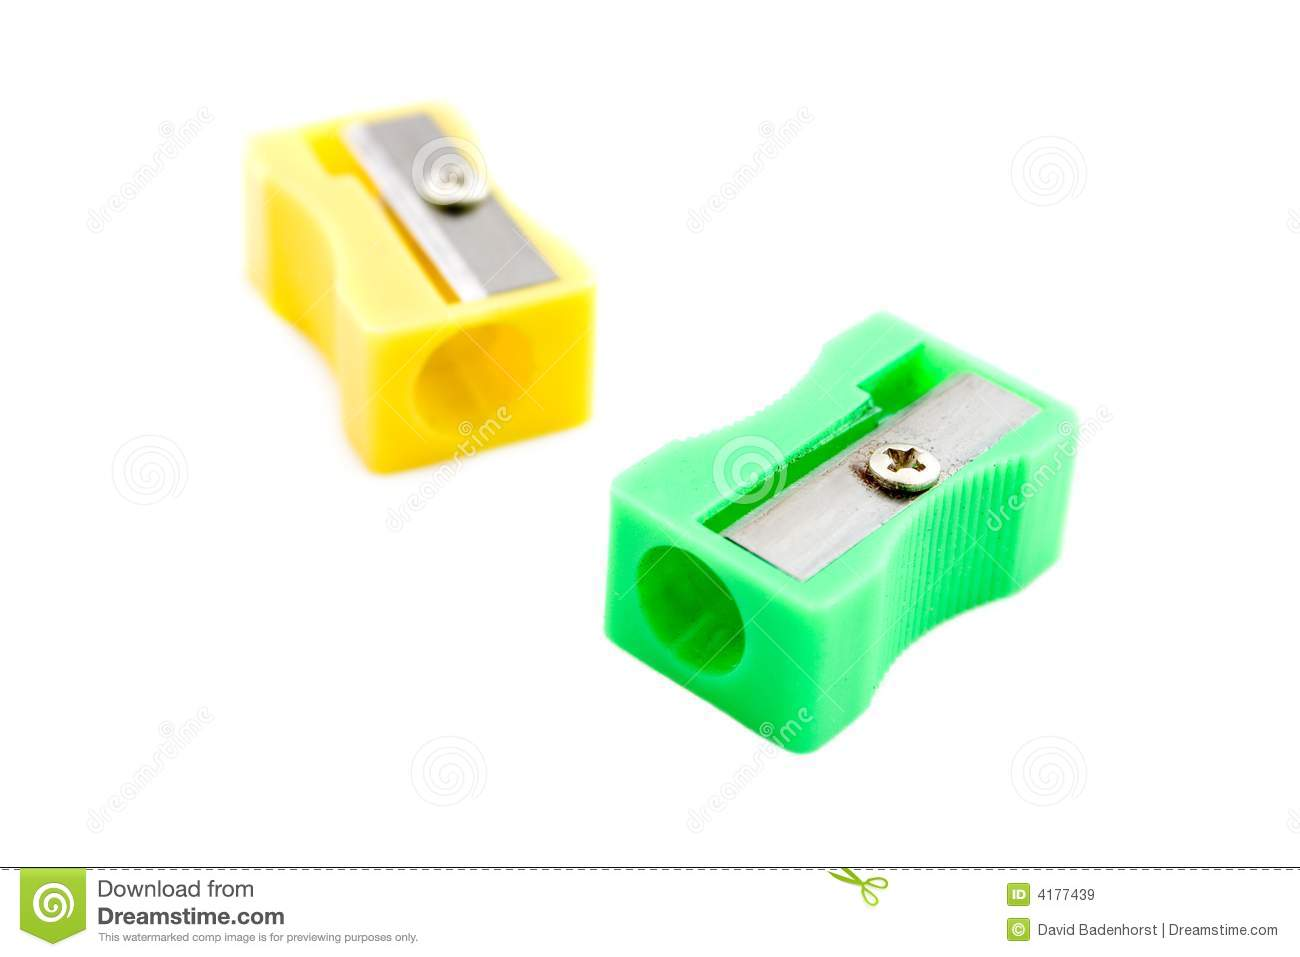 Sharpener clipart small pencil. Green and yellow sharpeners jpg royalty free library